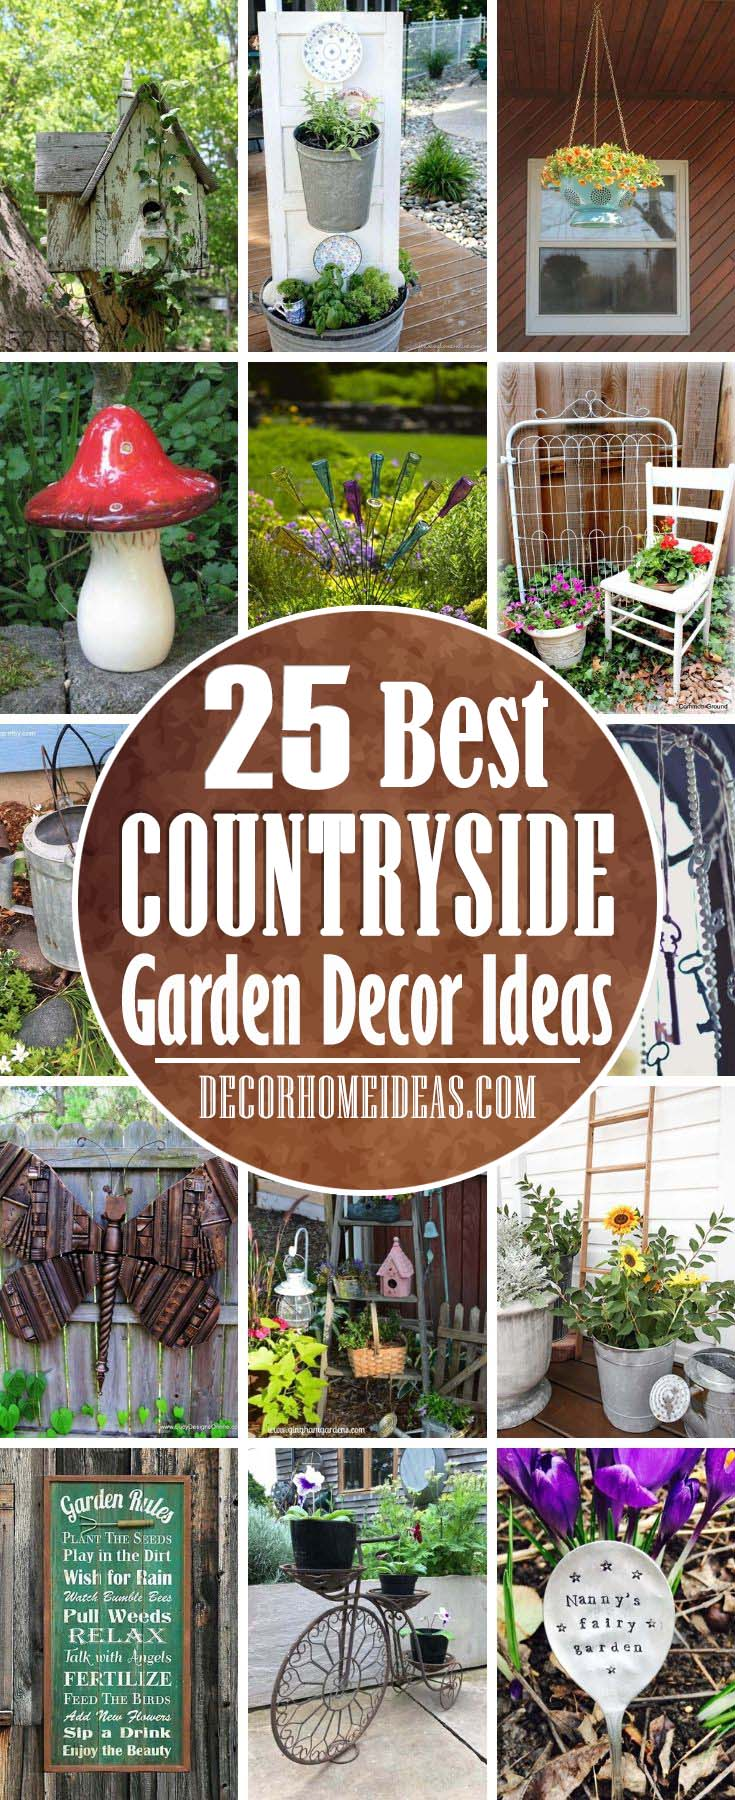 Unique Contryside Garden Decor Ideas. Boost your creativity with these budget-friendly countryside garden ideas and decorations that you can do. #countryside #garden #decorhomeideas